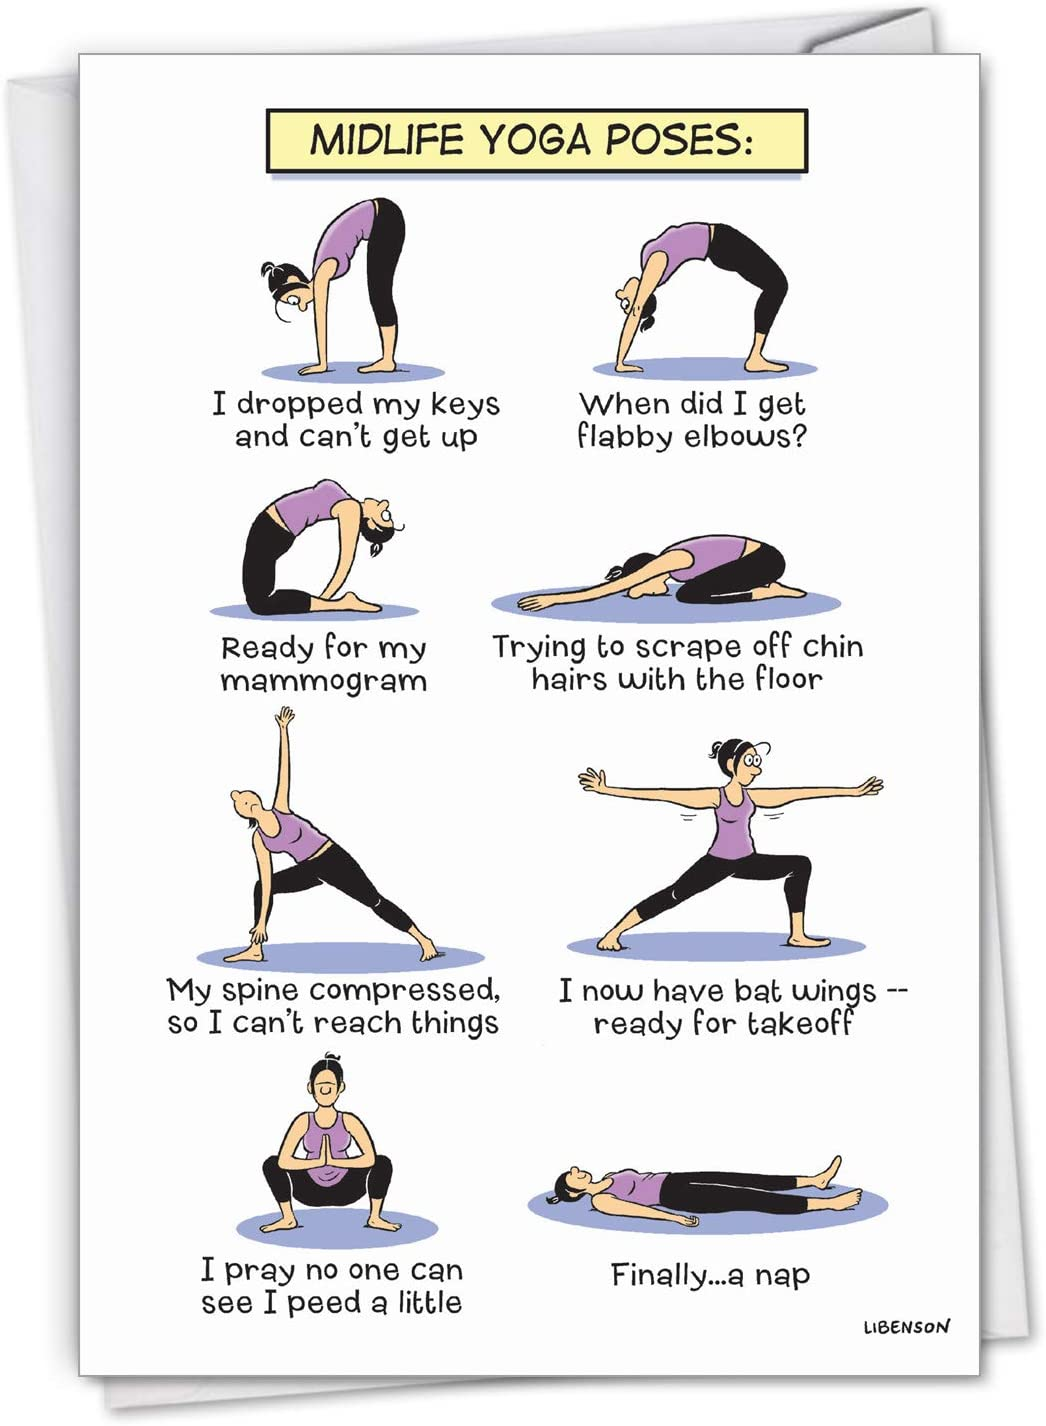 Amazon Com Nobleworks Midlife Yoga Poses Funny Happy Birthday Card For Women Wife Cartoon Notecard For Birthday Woman C7312bdg Office Products